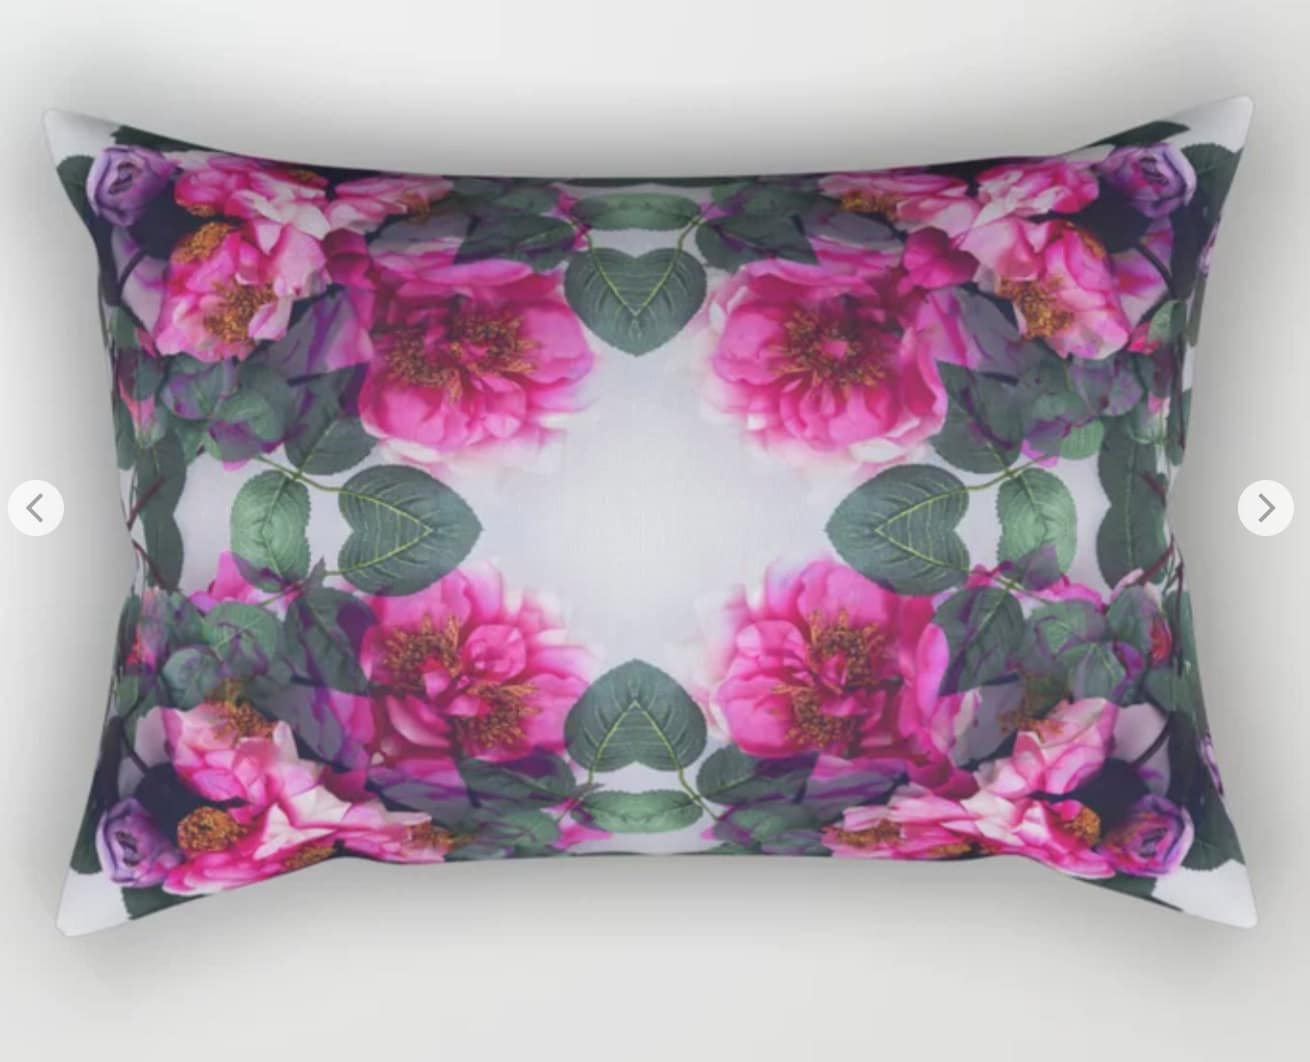 Rosy Posy Pillows